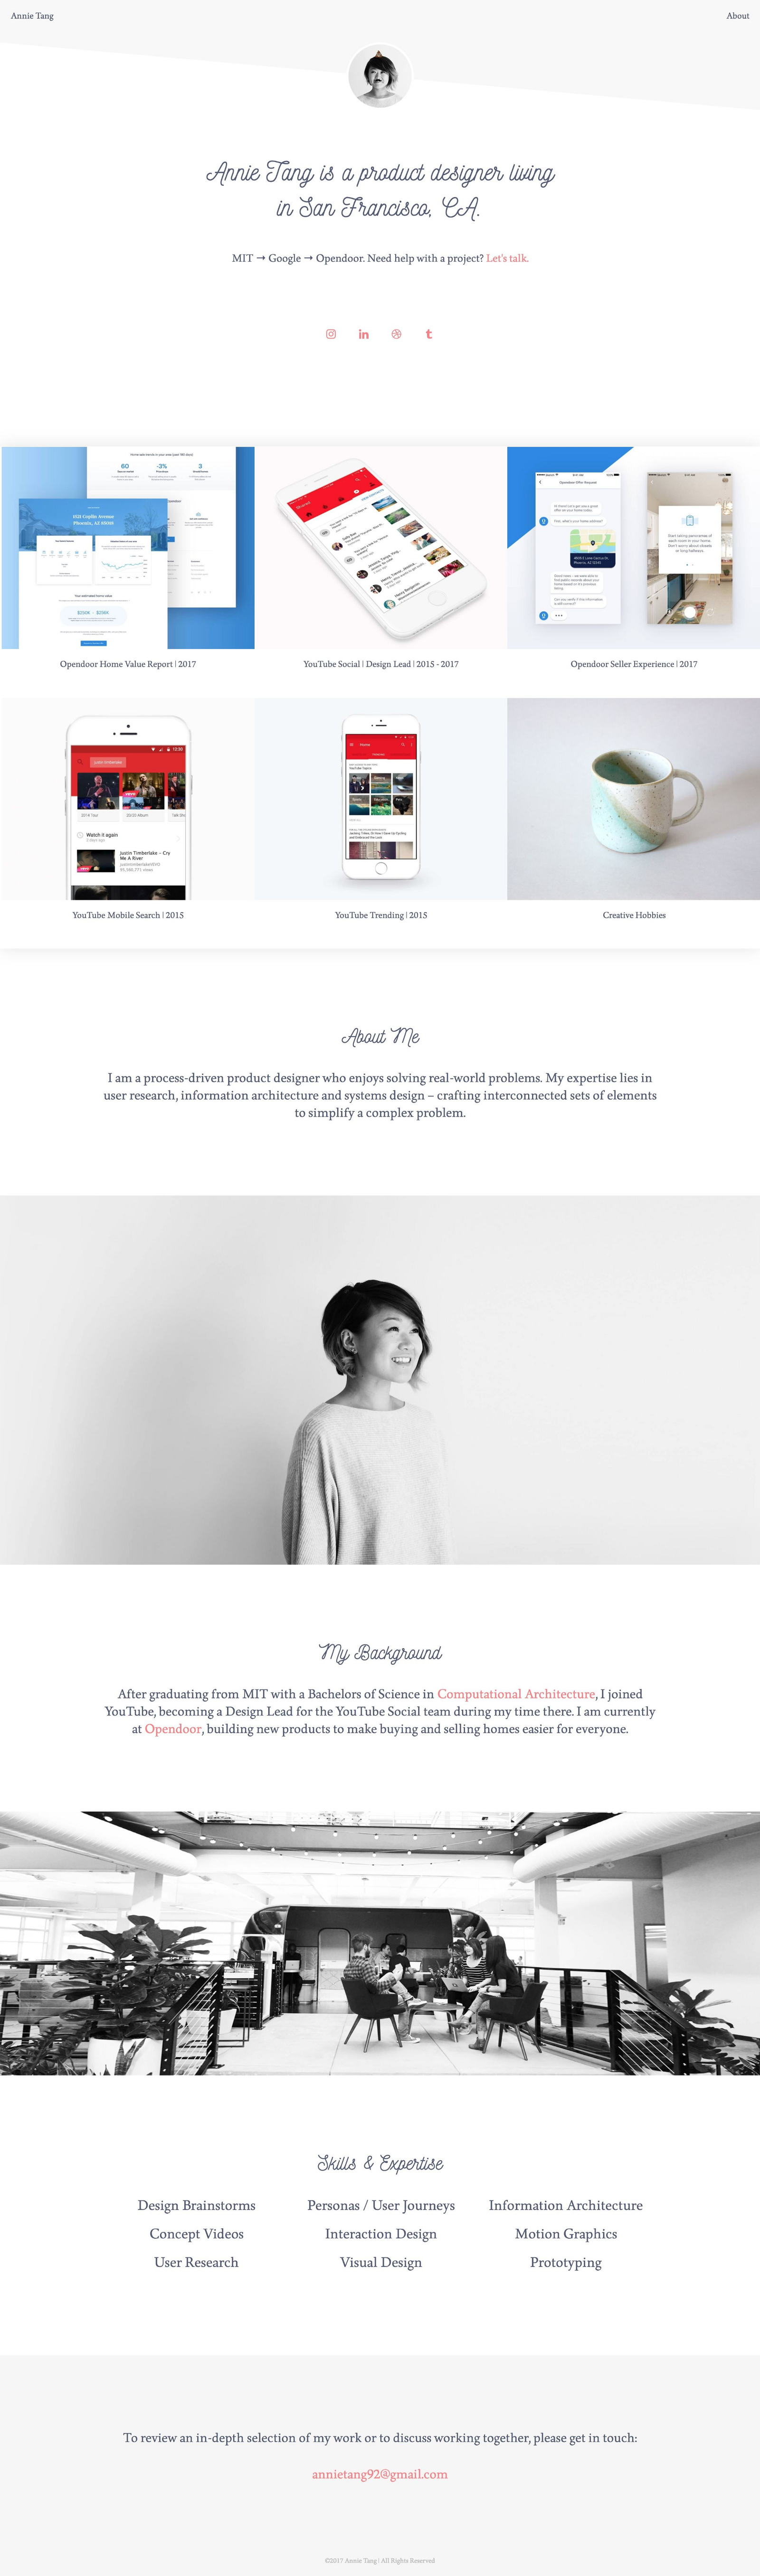 5 great design portfolios from students who are hired by Google and Facebook